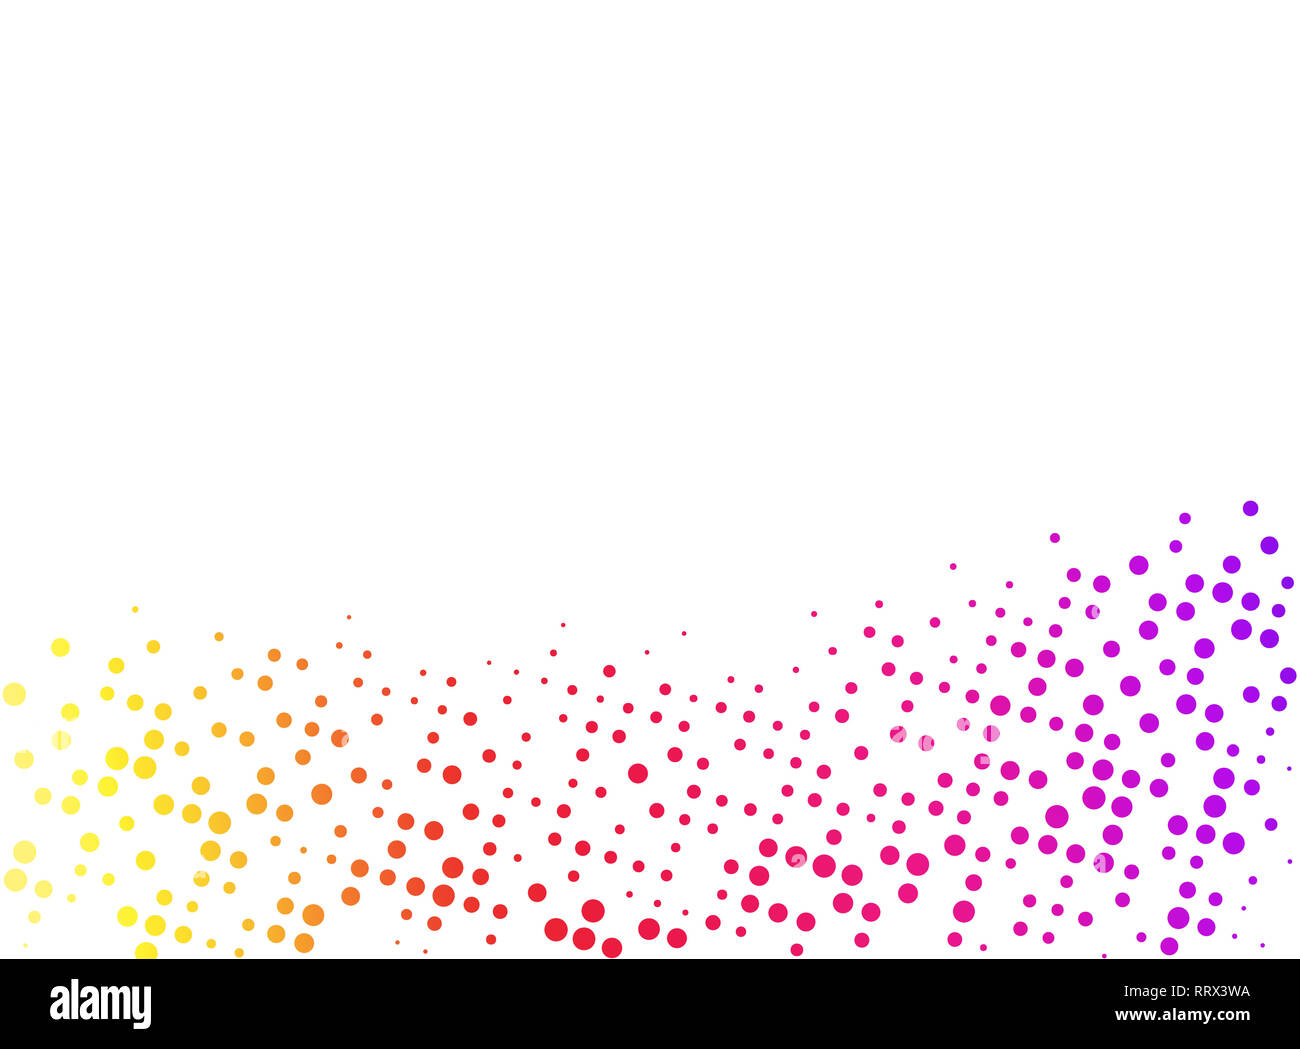 Colorful rainbow colored abstract dotted background with copy space and clipping path. Creative halftone pattern, design template and illustration. - Stock Image